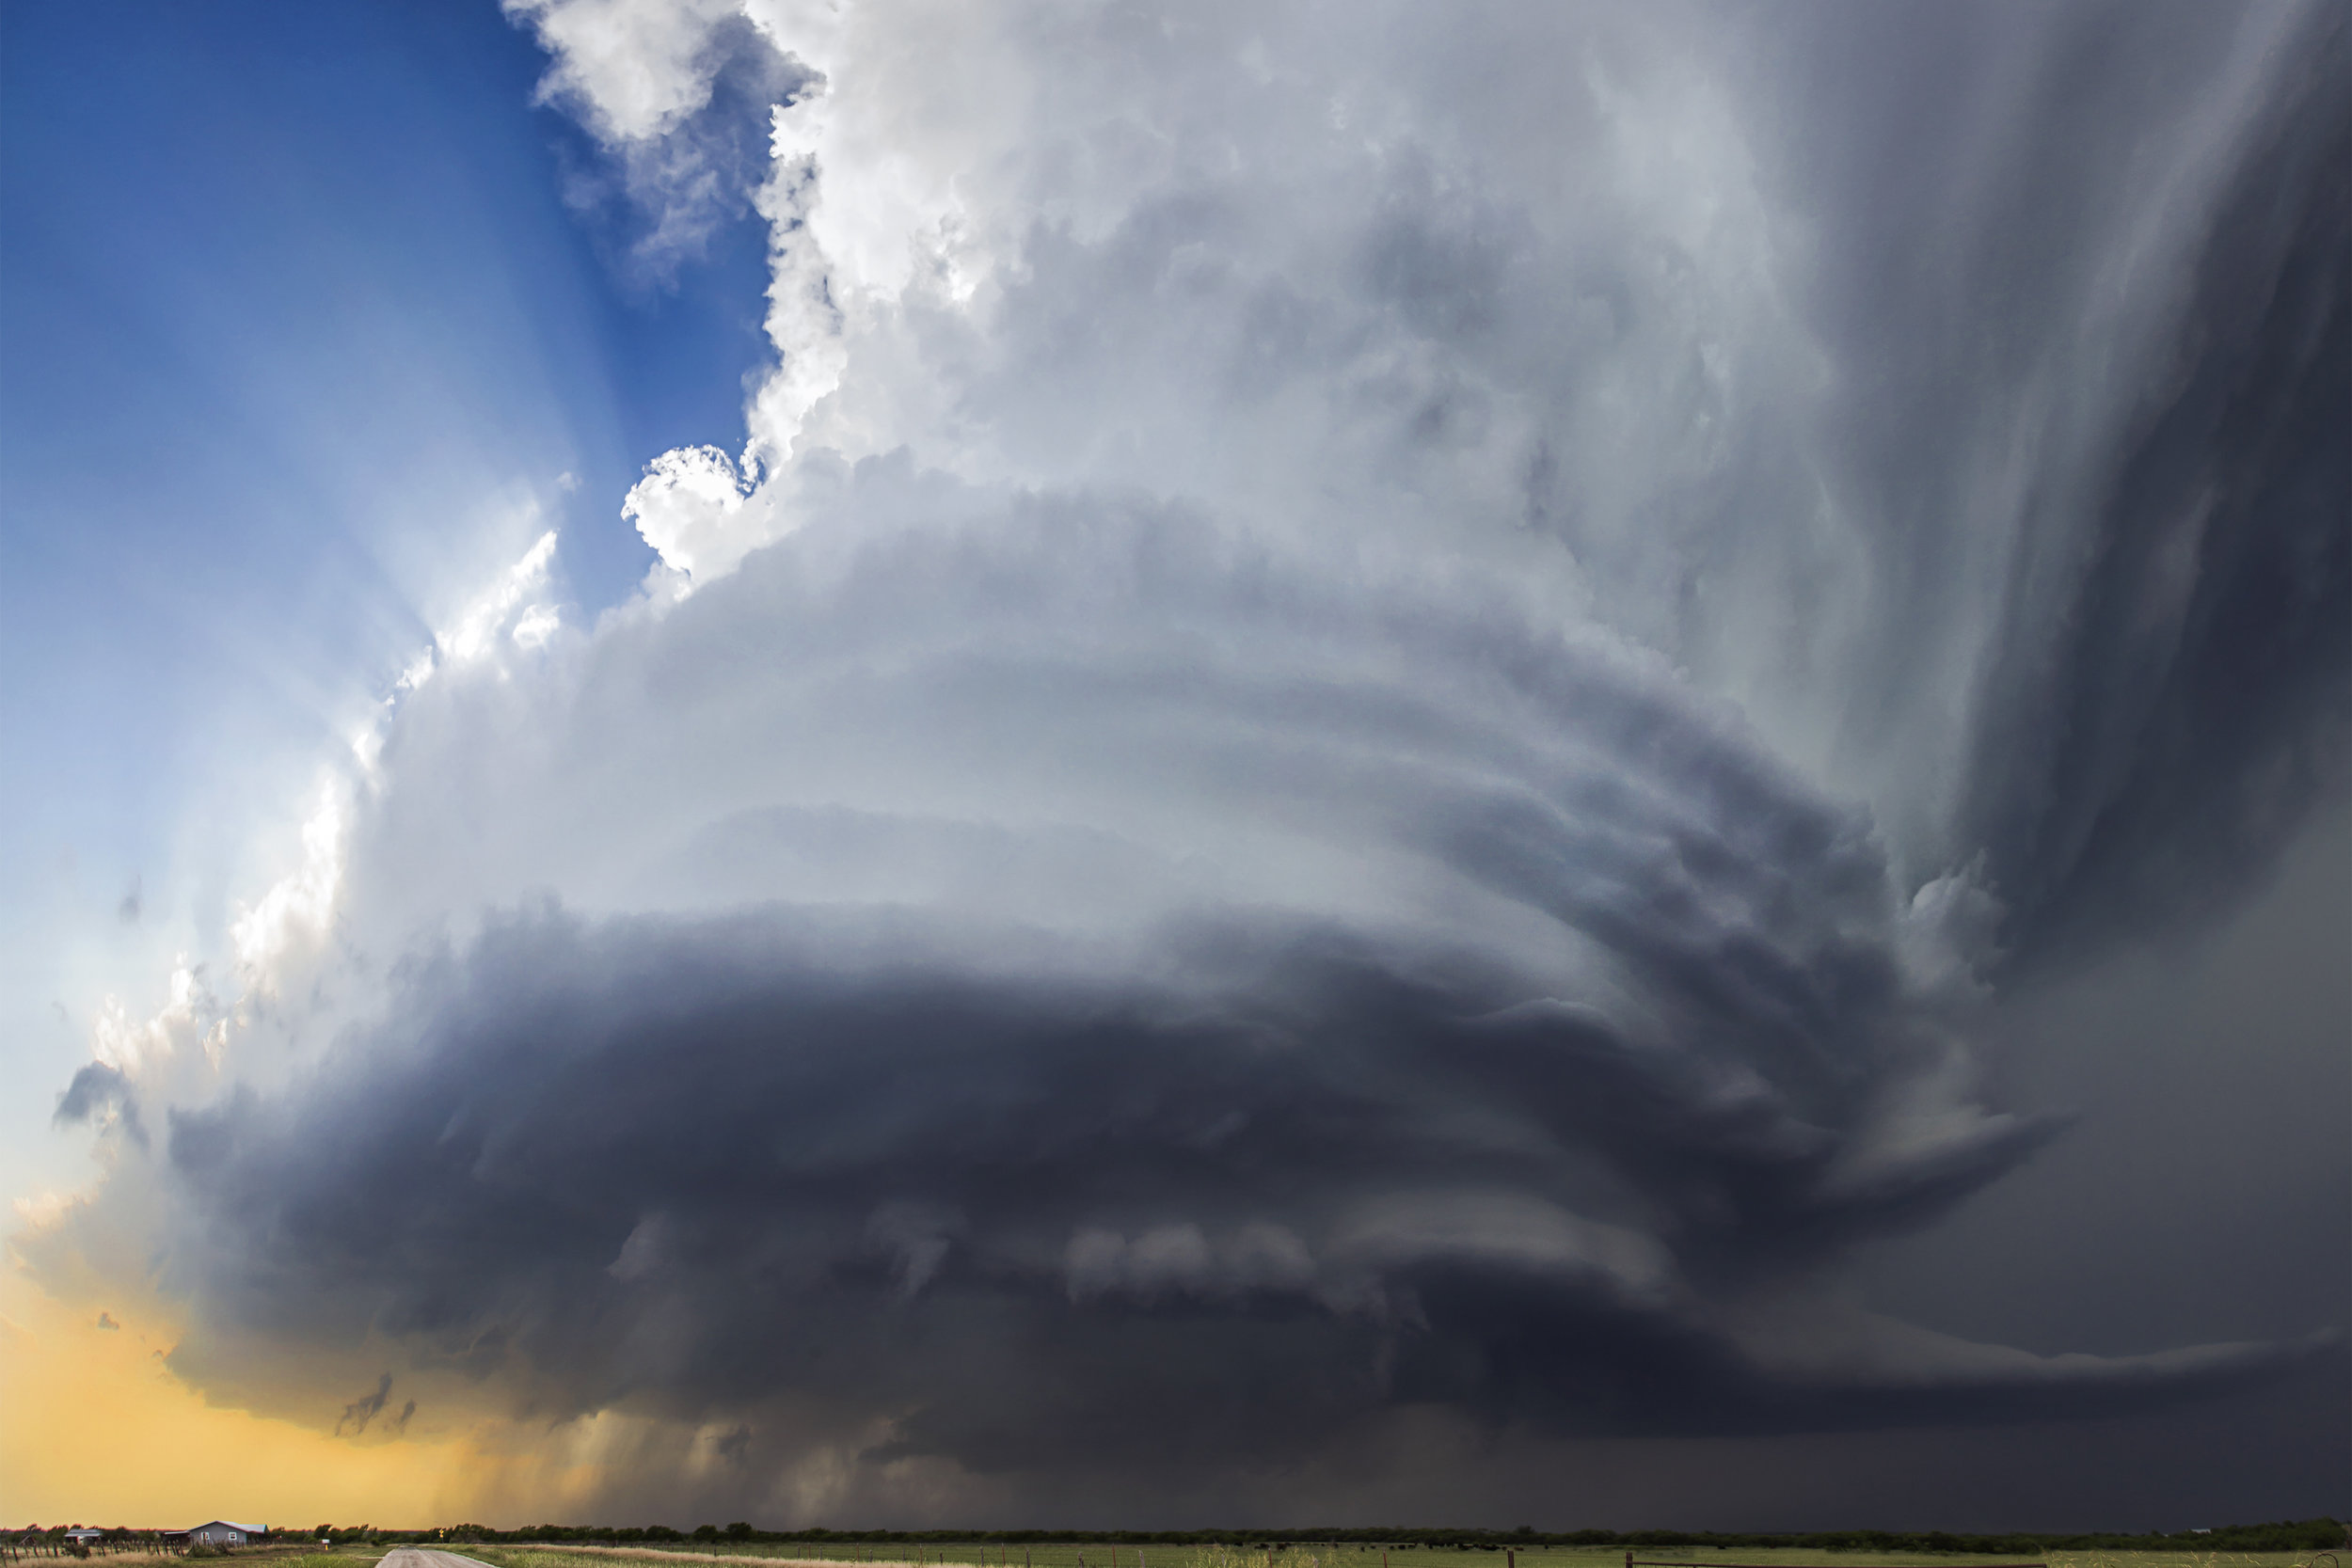 Storm chase stormchasing chasing tours adventures photography tour workshop 2018